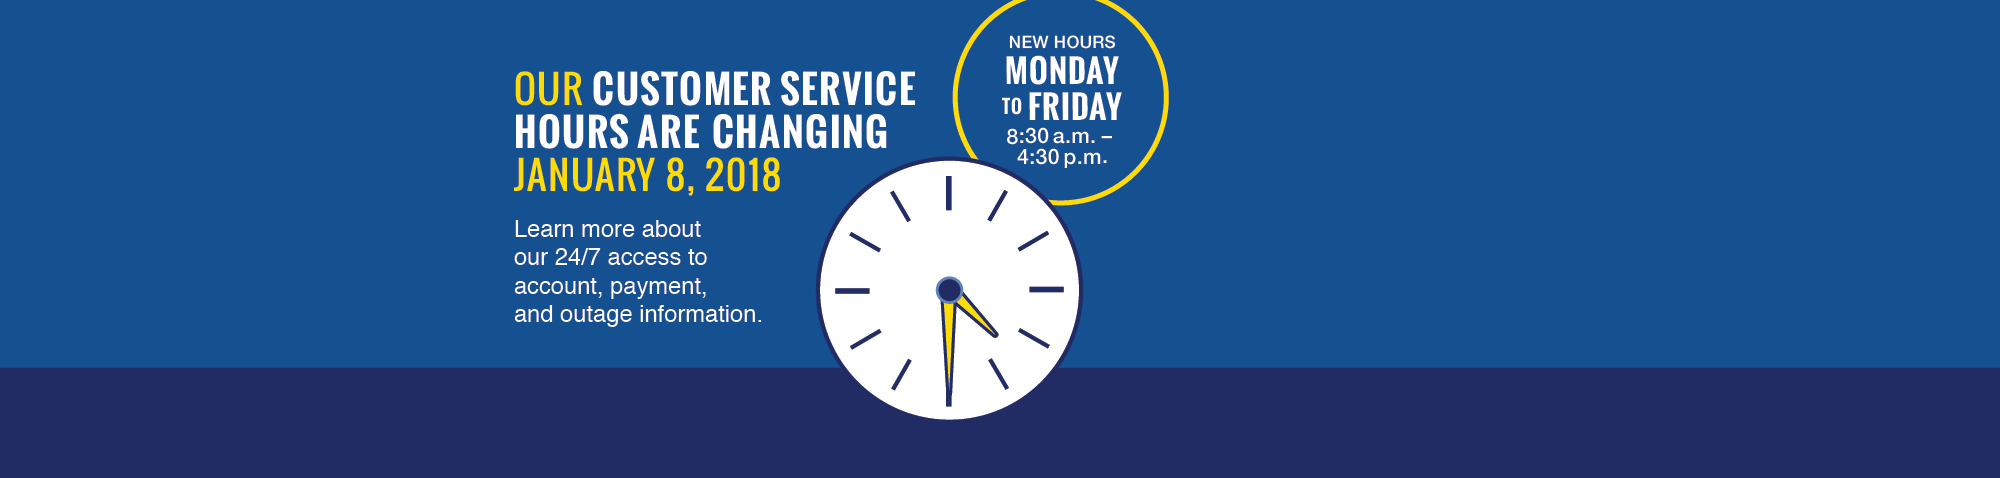 Our customer service hours are changing